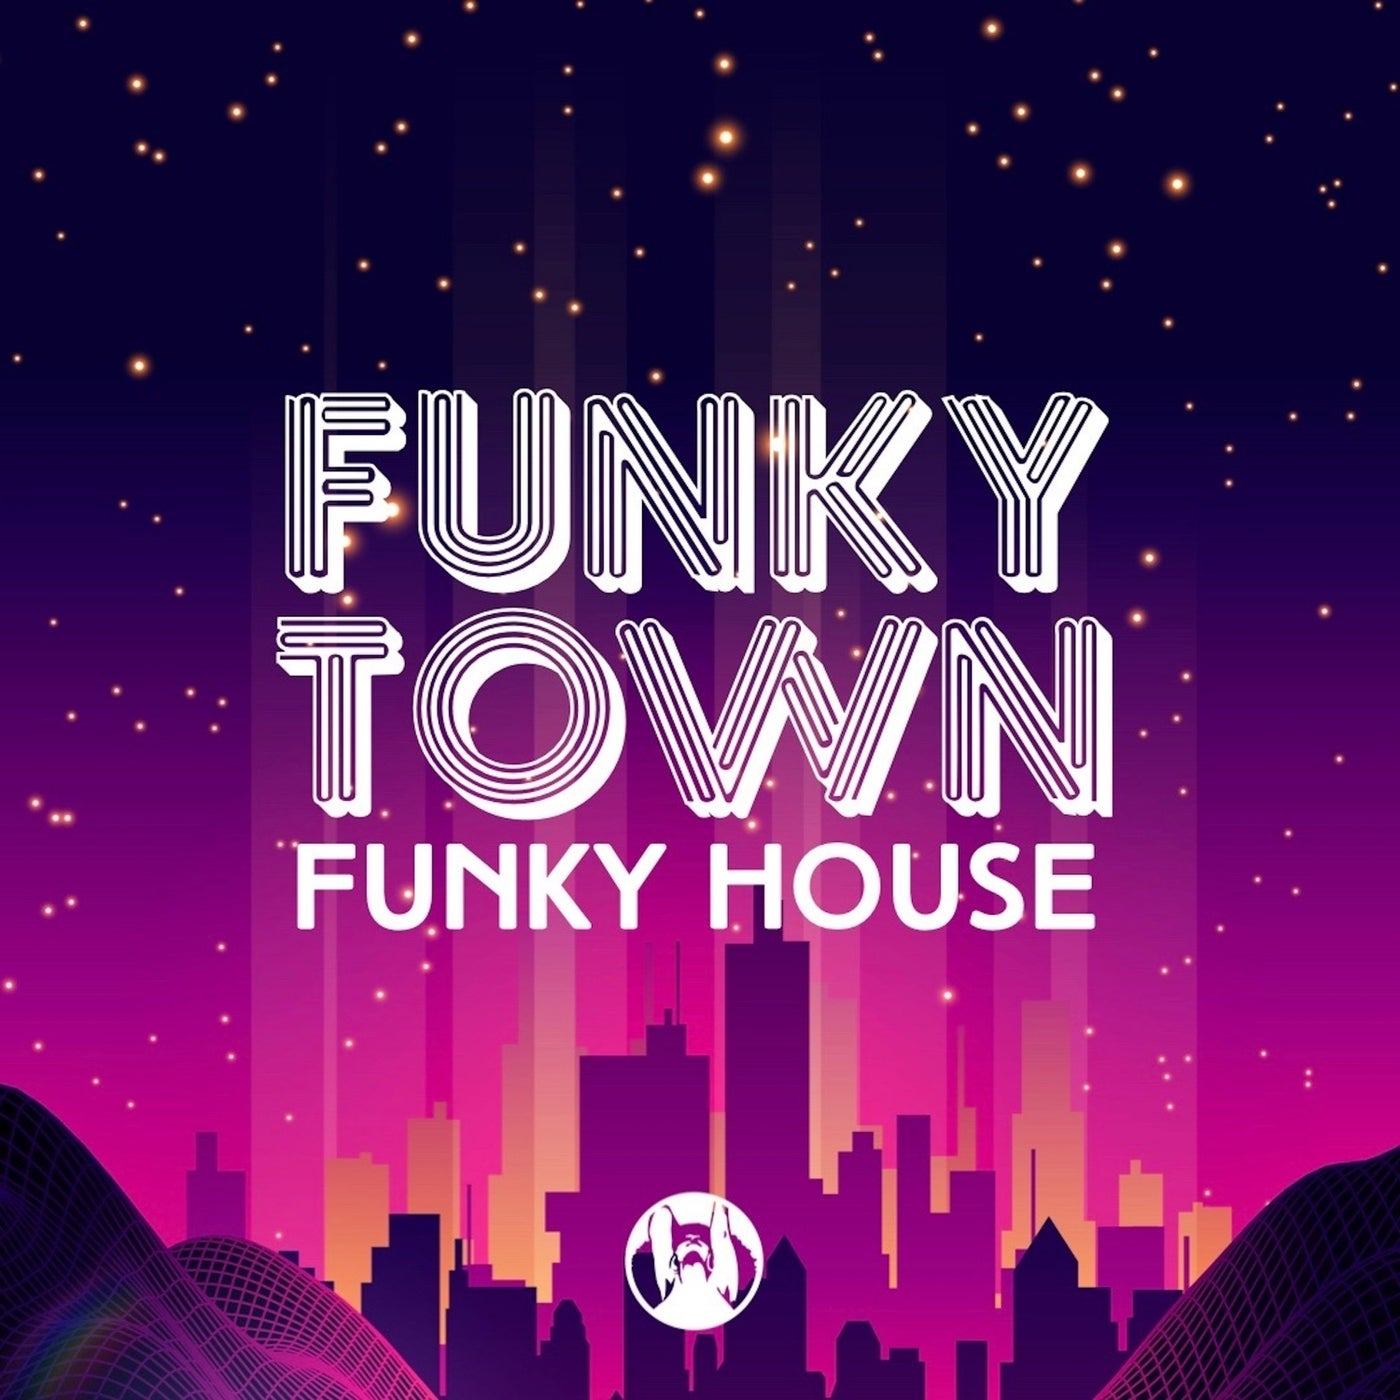 Funky Town Funky House